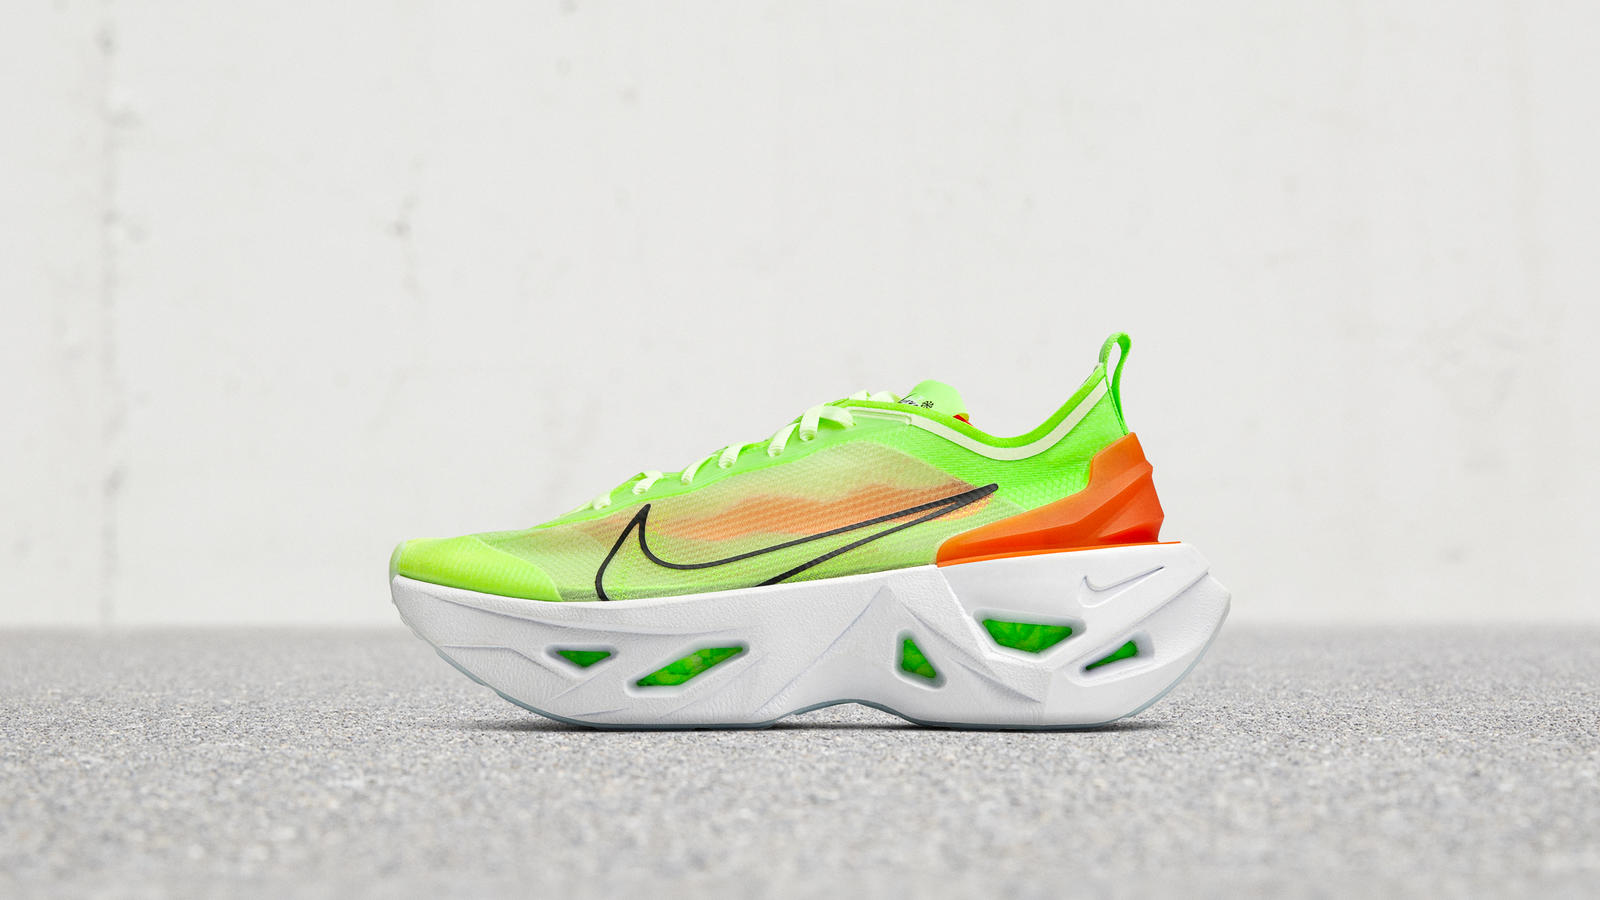 Nike Women's Footwear Summer 19 Nike News